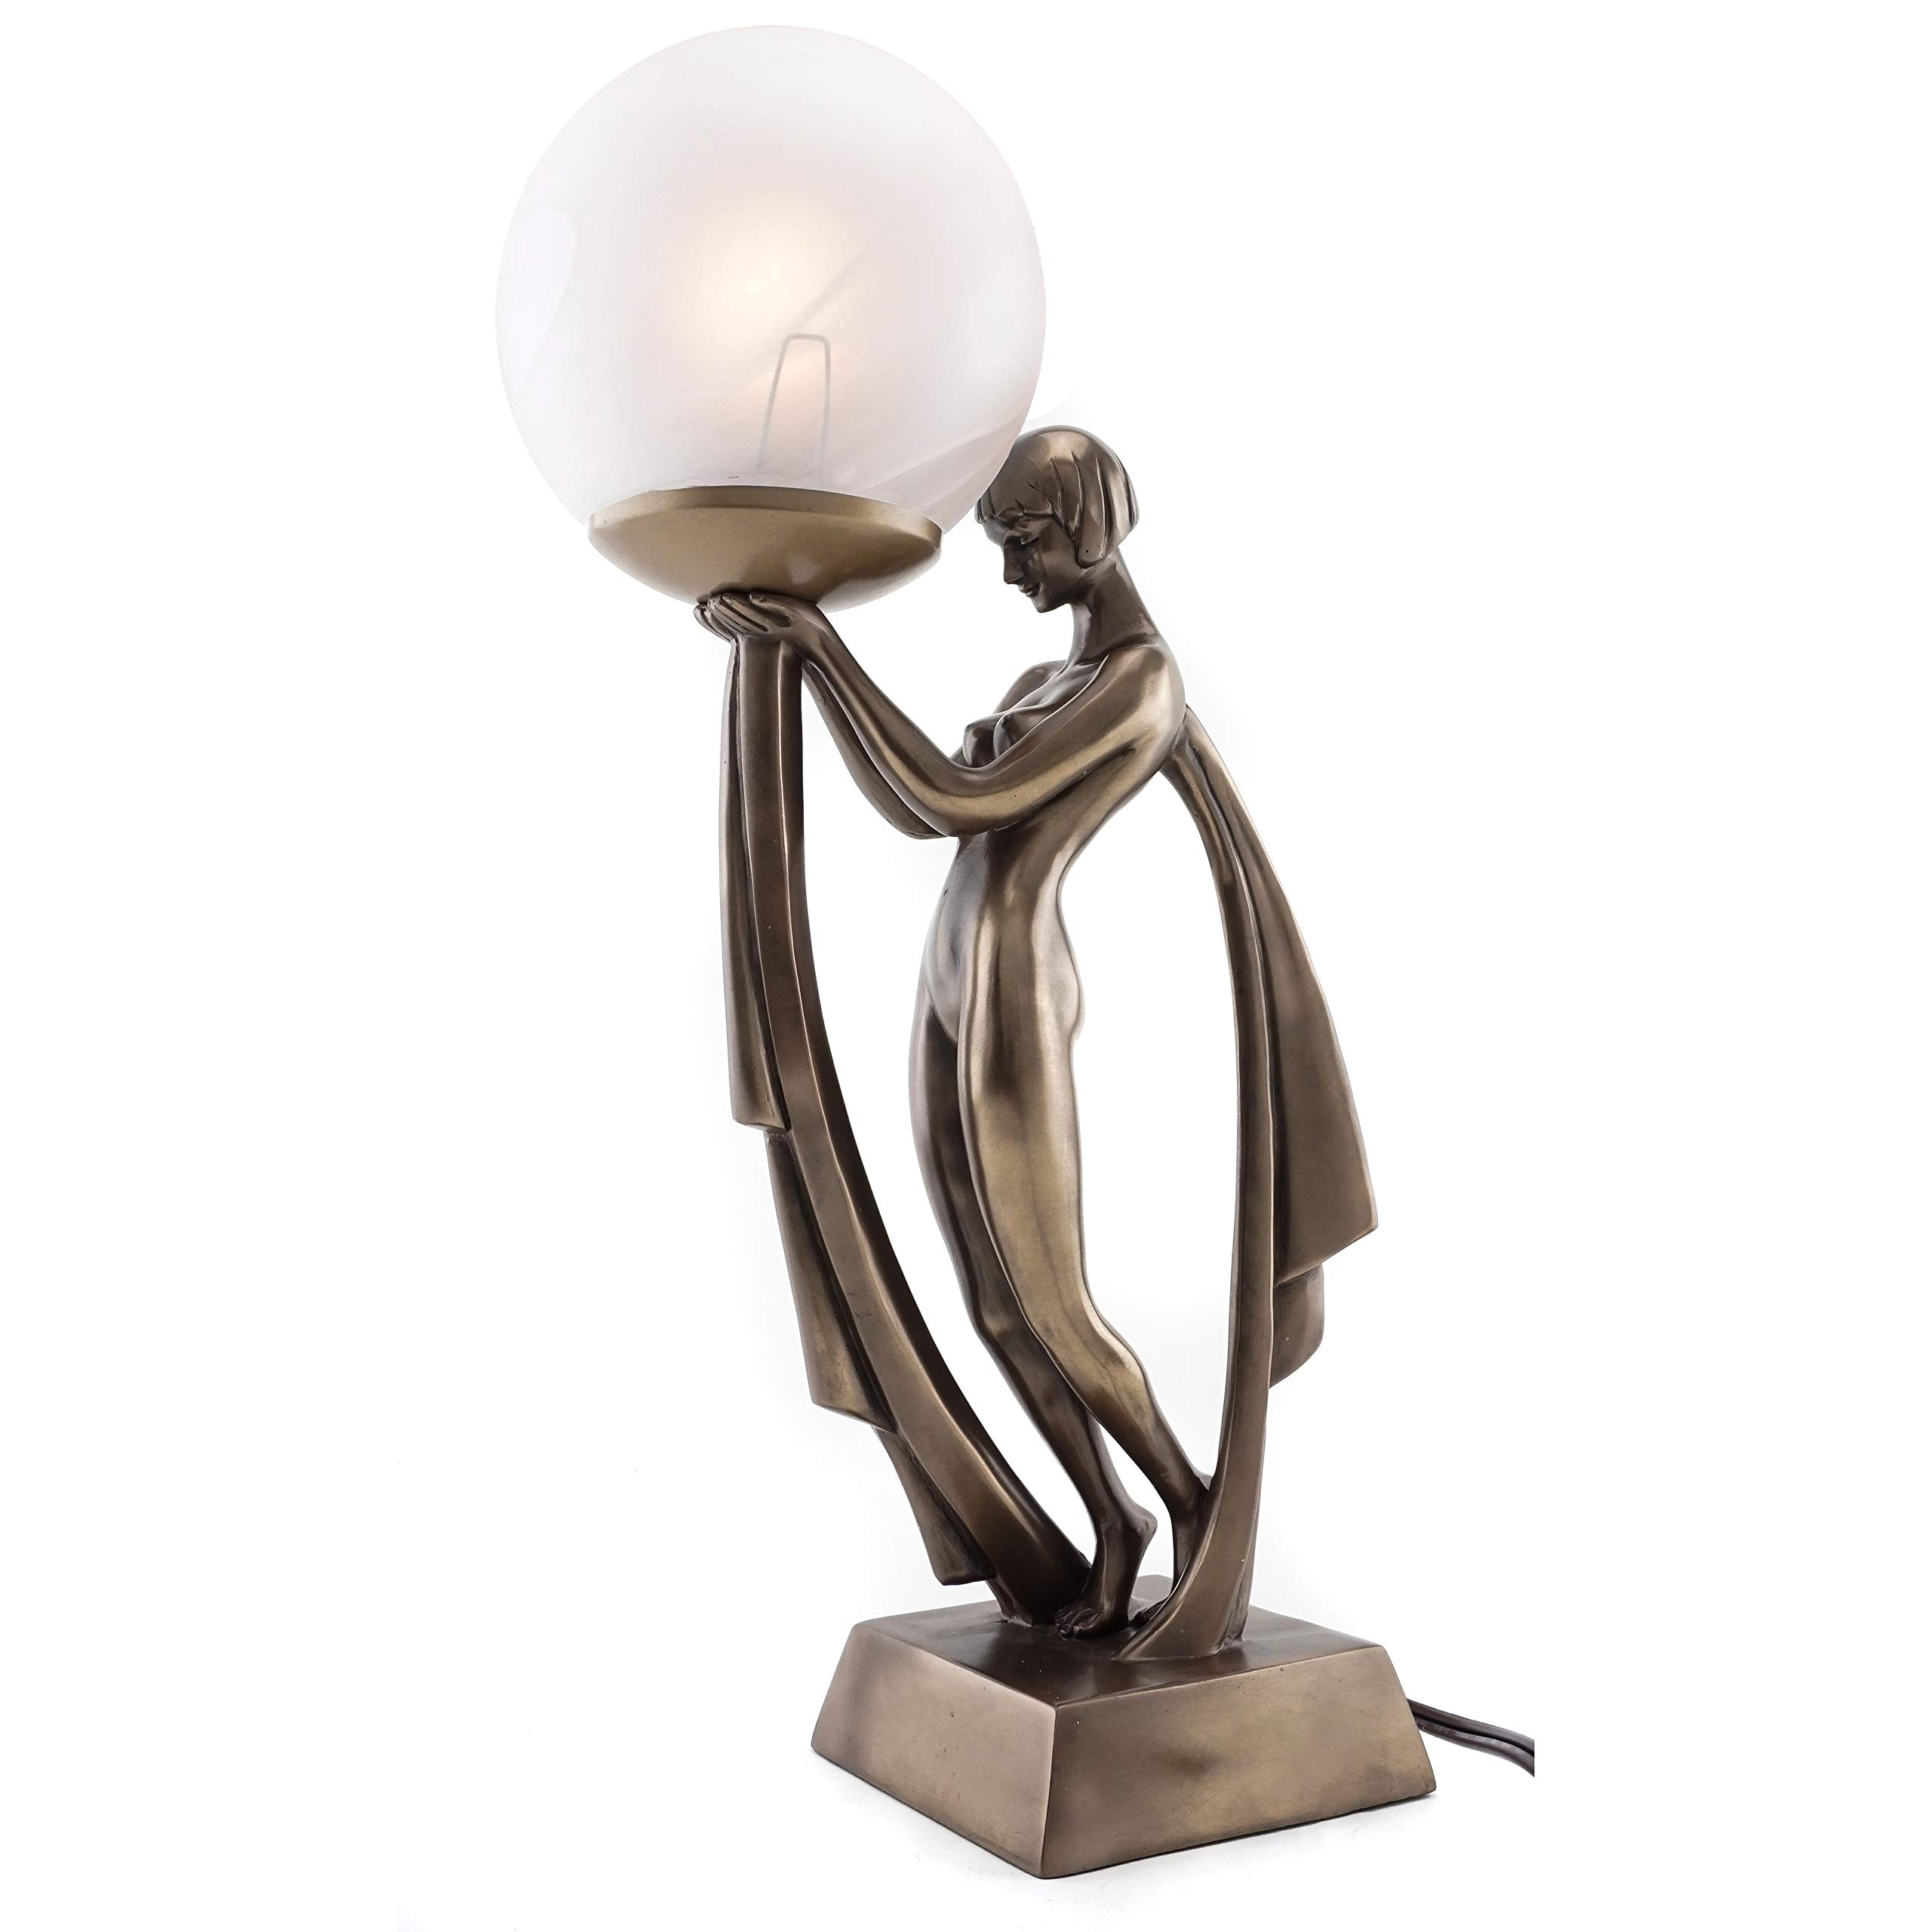 Top Collection Modern Art Deco Lady Lamp Statue Decorative Table Lamp Sculpture In Premium Cold Cast Bronze 16 Inch Collectible Beautiful Light